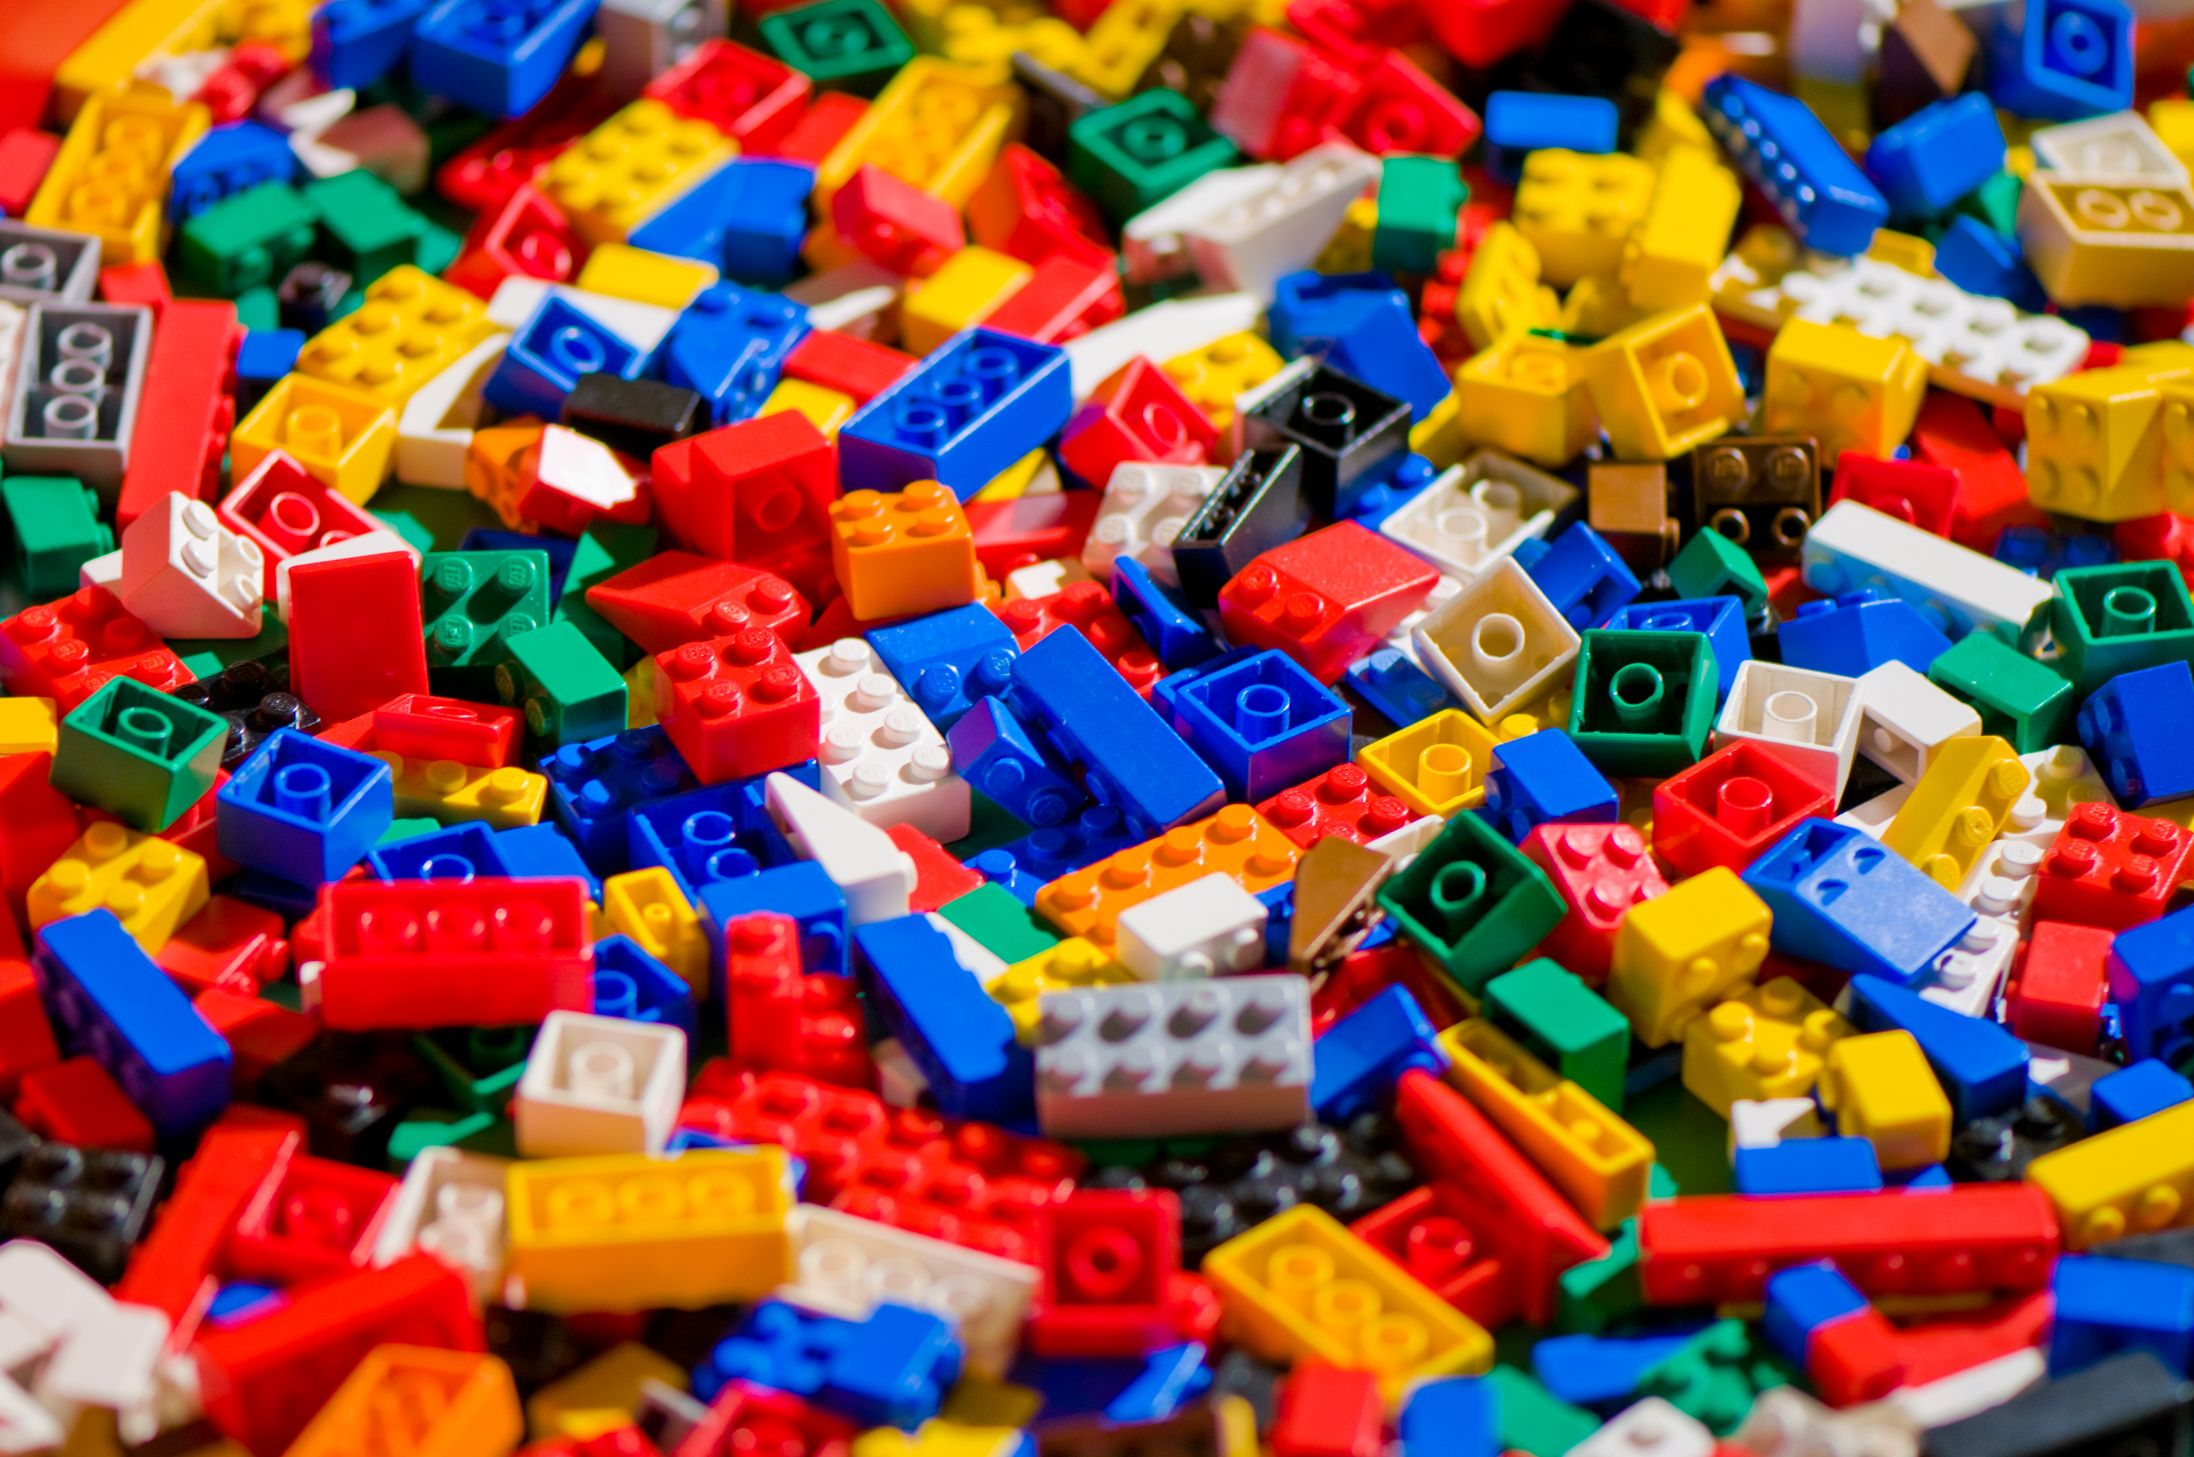 Research shows that using manipulatives help students learn math skills. Brick Math is a pioneering program that uses LEGO® bricks to model math concepts in the elementary curriculum.